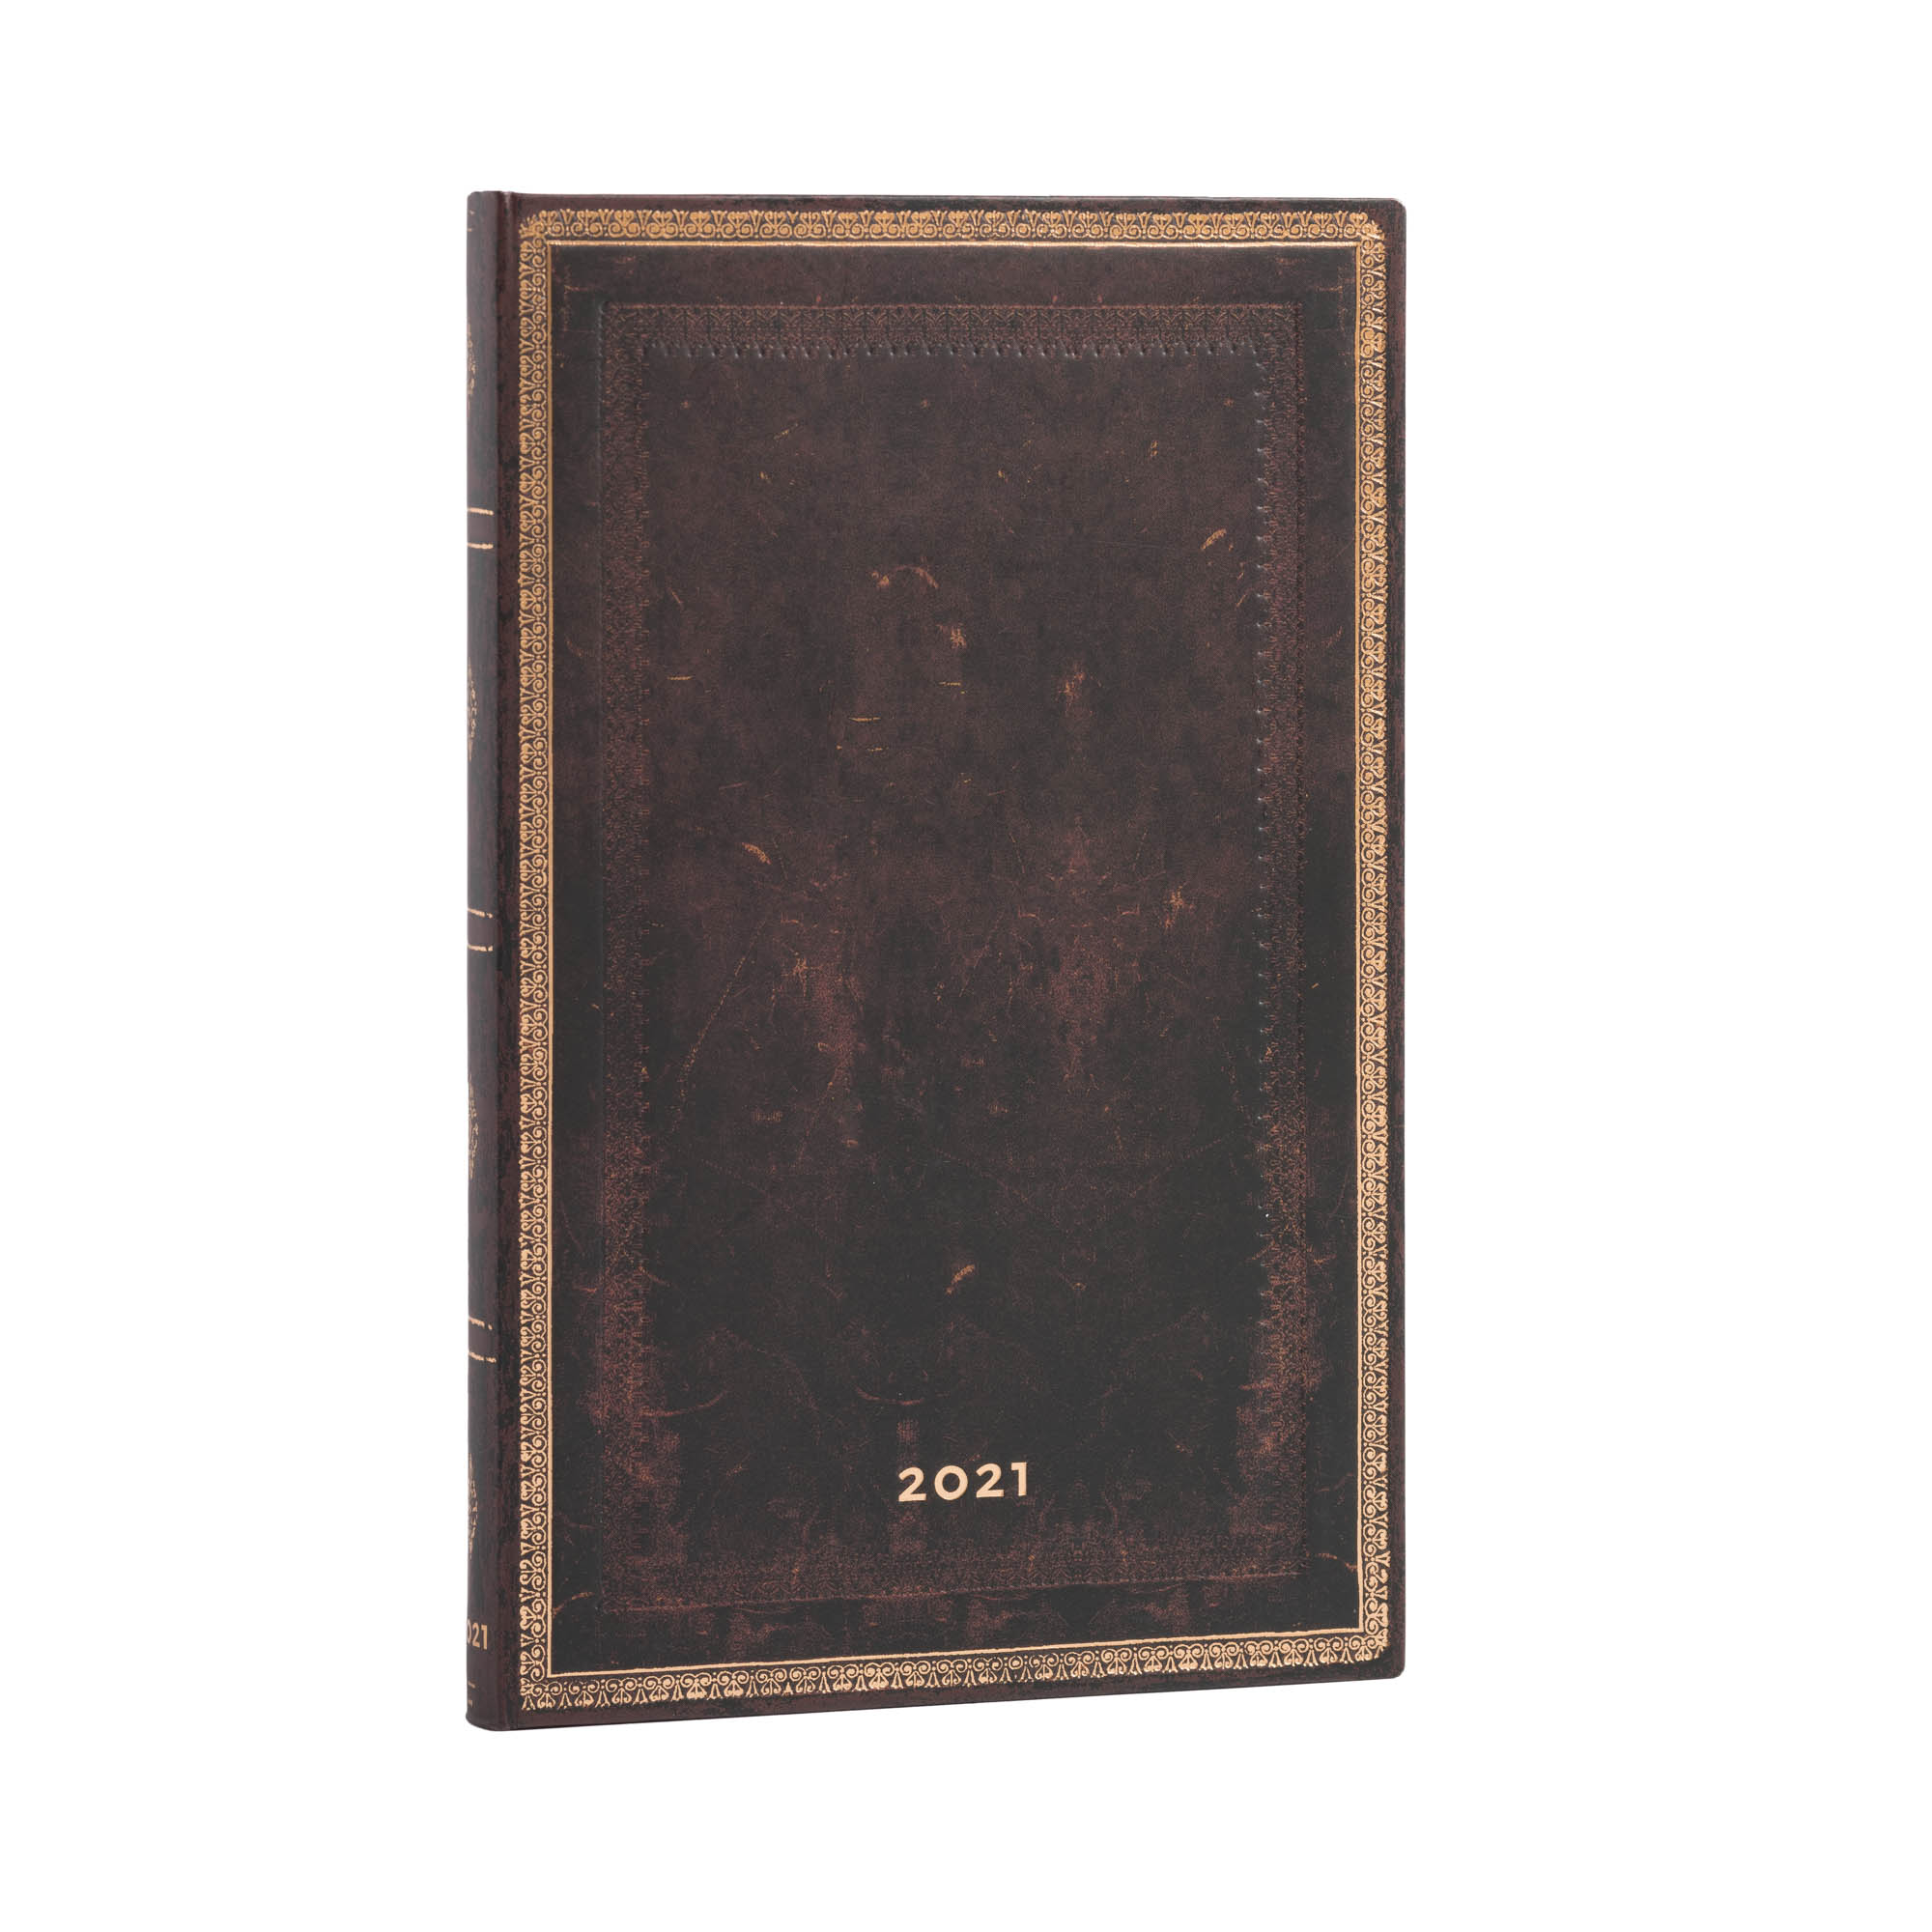 Paperblanks Maxi Black Moroccan 2021 Week-At-A-Time Planner